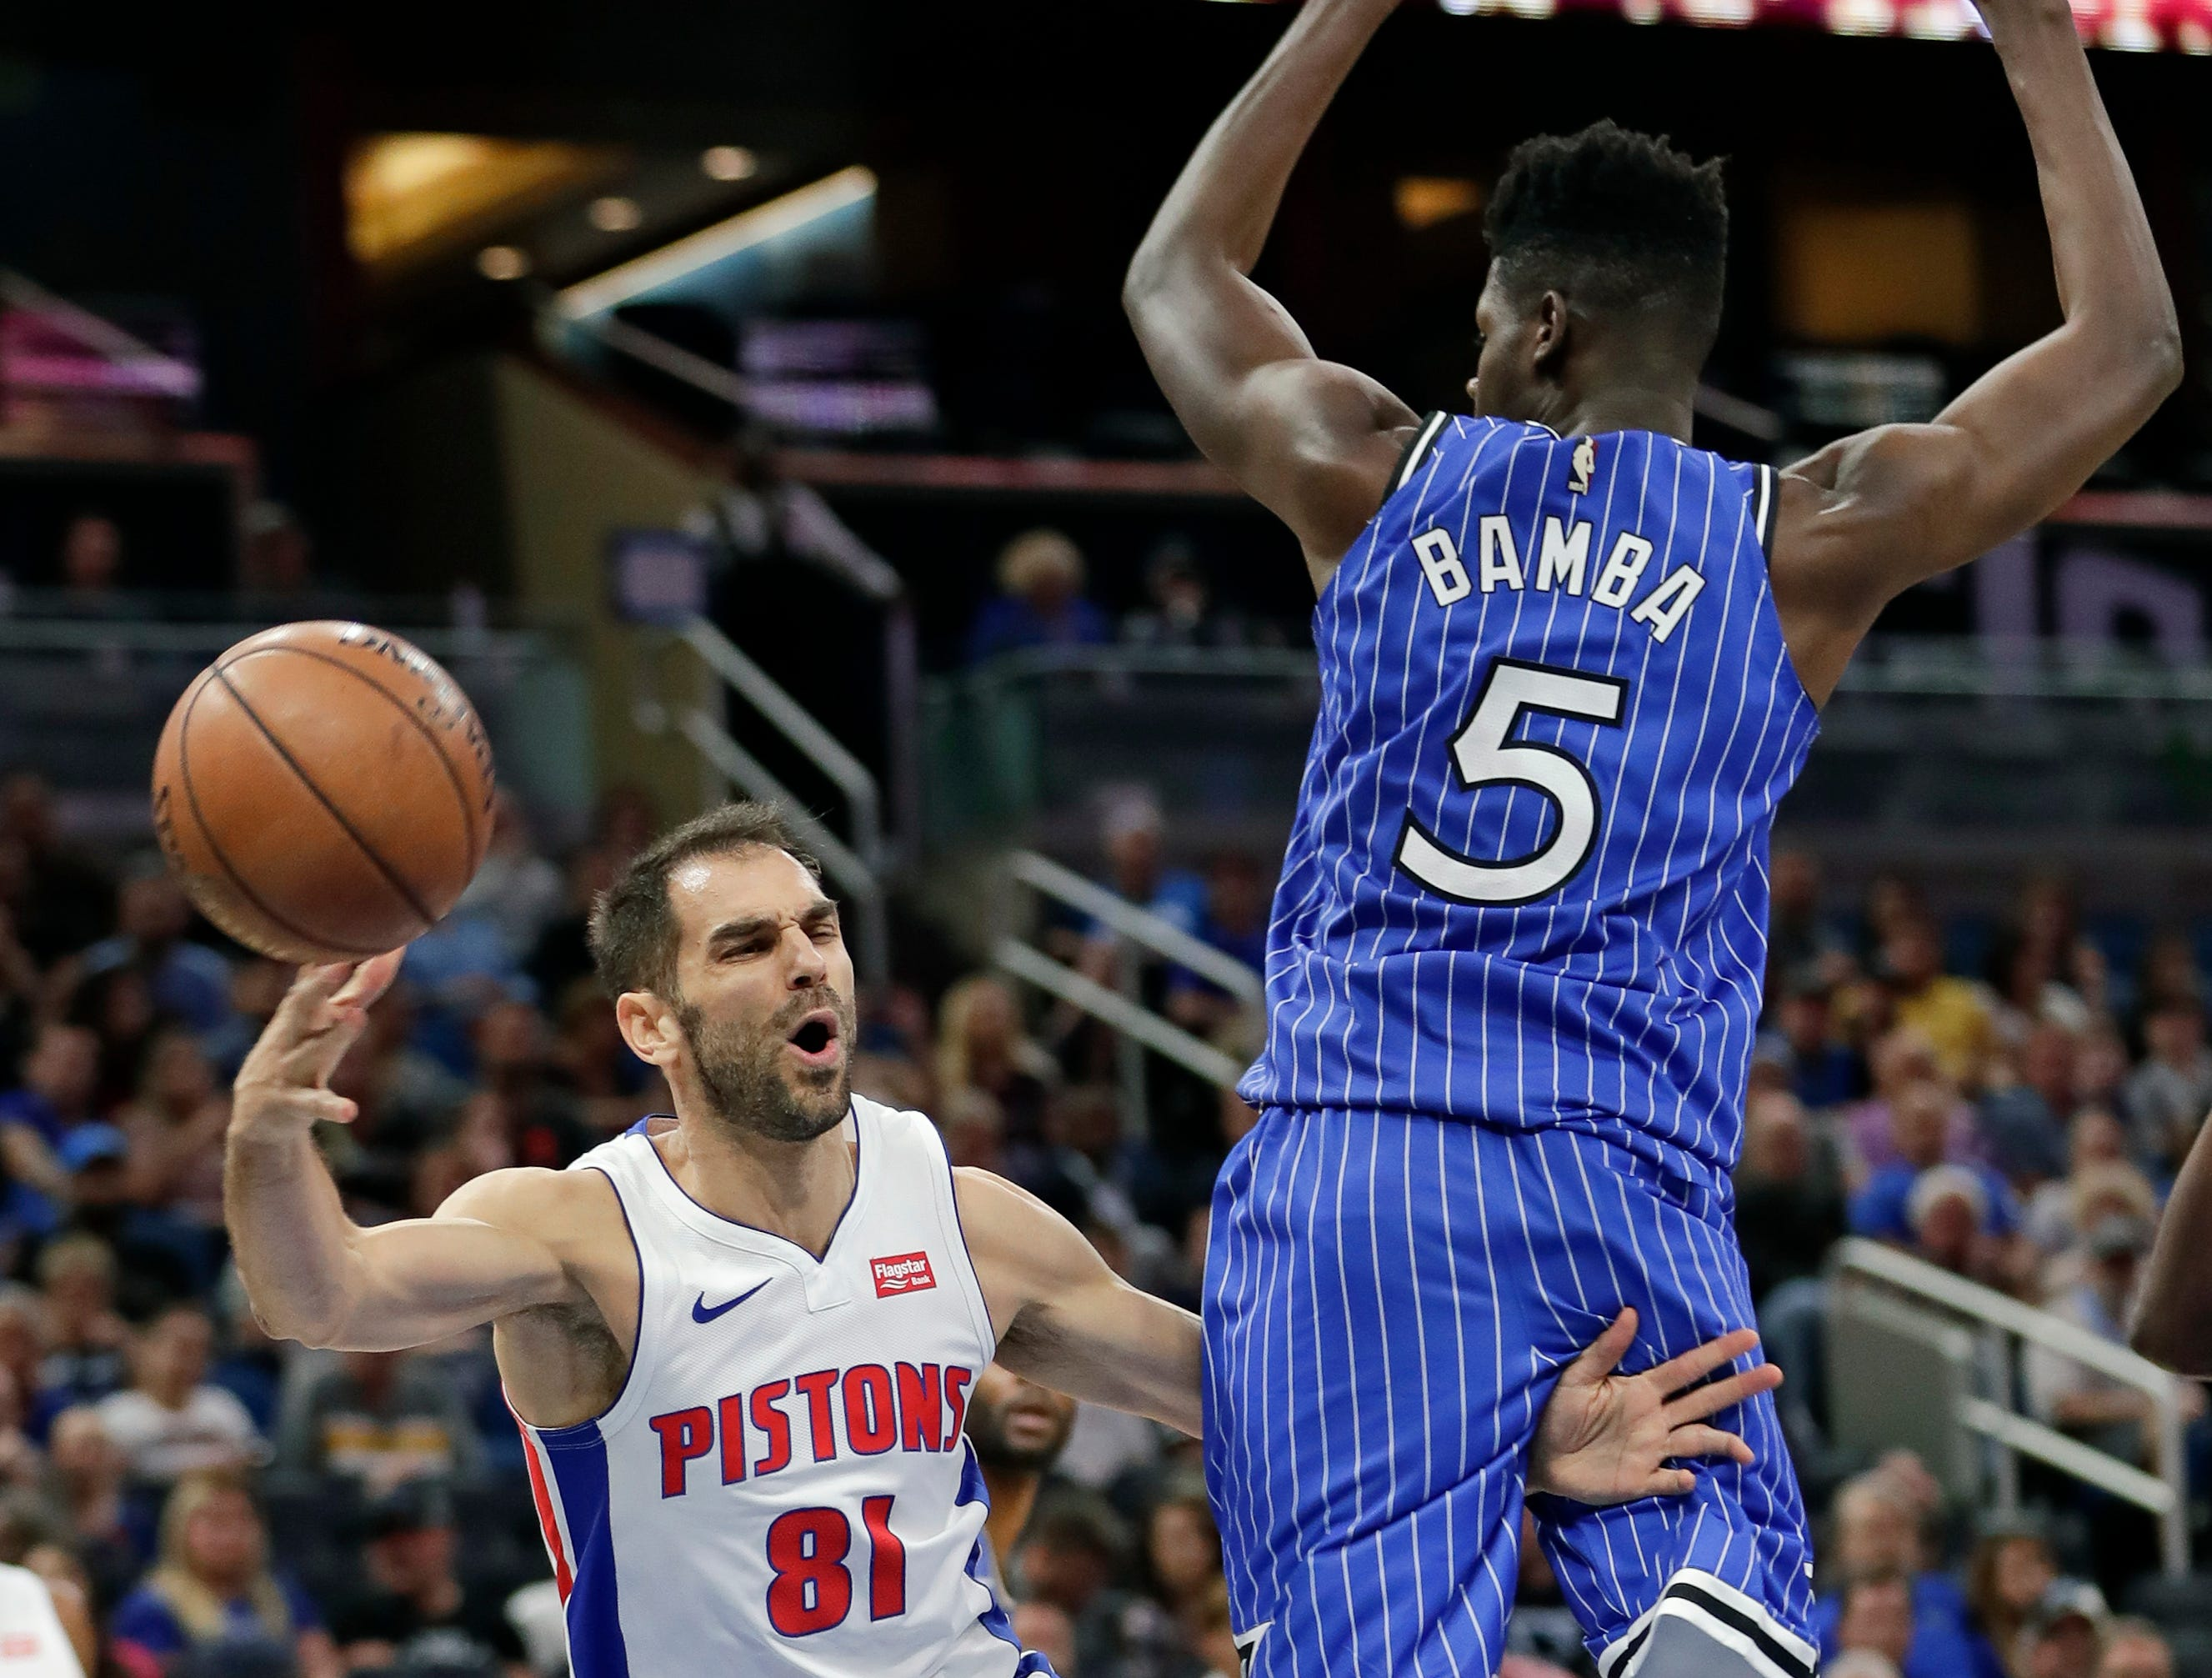 Detroit Pistons' Jose Calderon (81) passes the ball around Orlando Magic's Mohamed Bamba (5) during the first half of an NBA basketball game, Wednesday, Nov. 7, 2018, in Orlando, Fla.